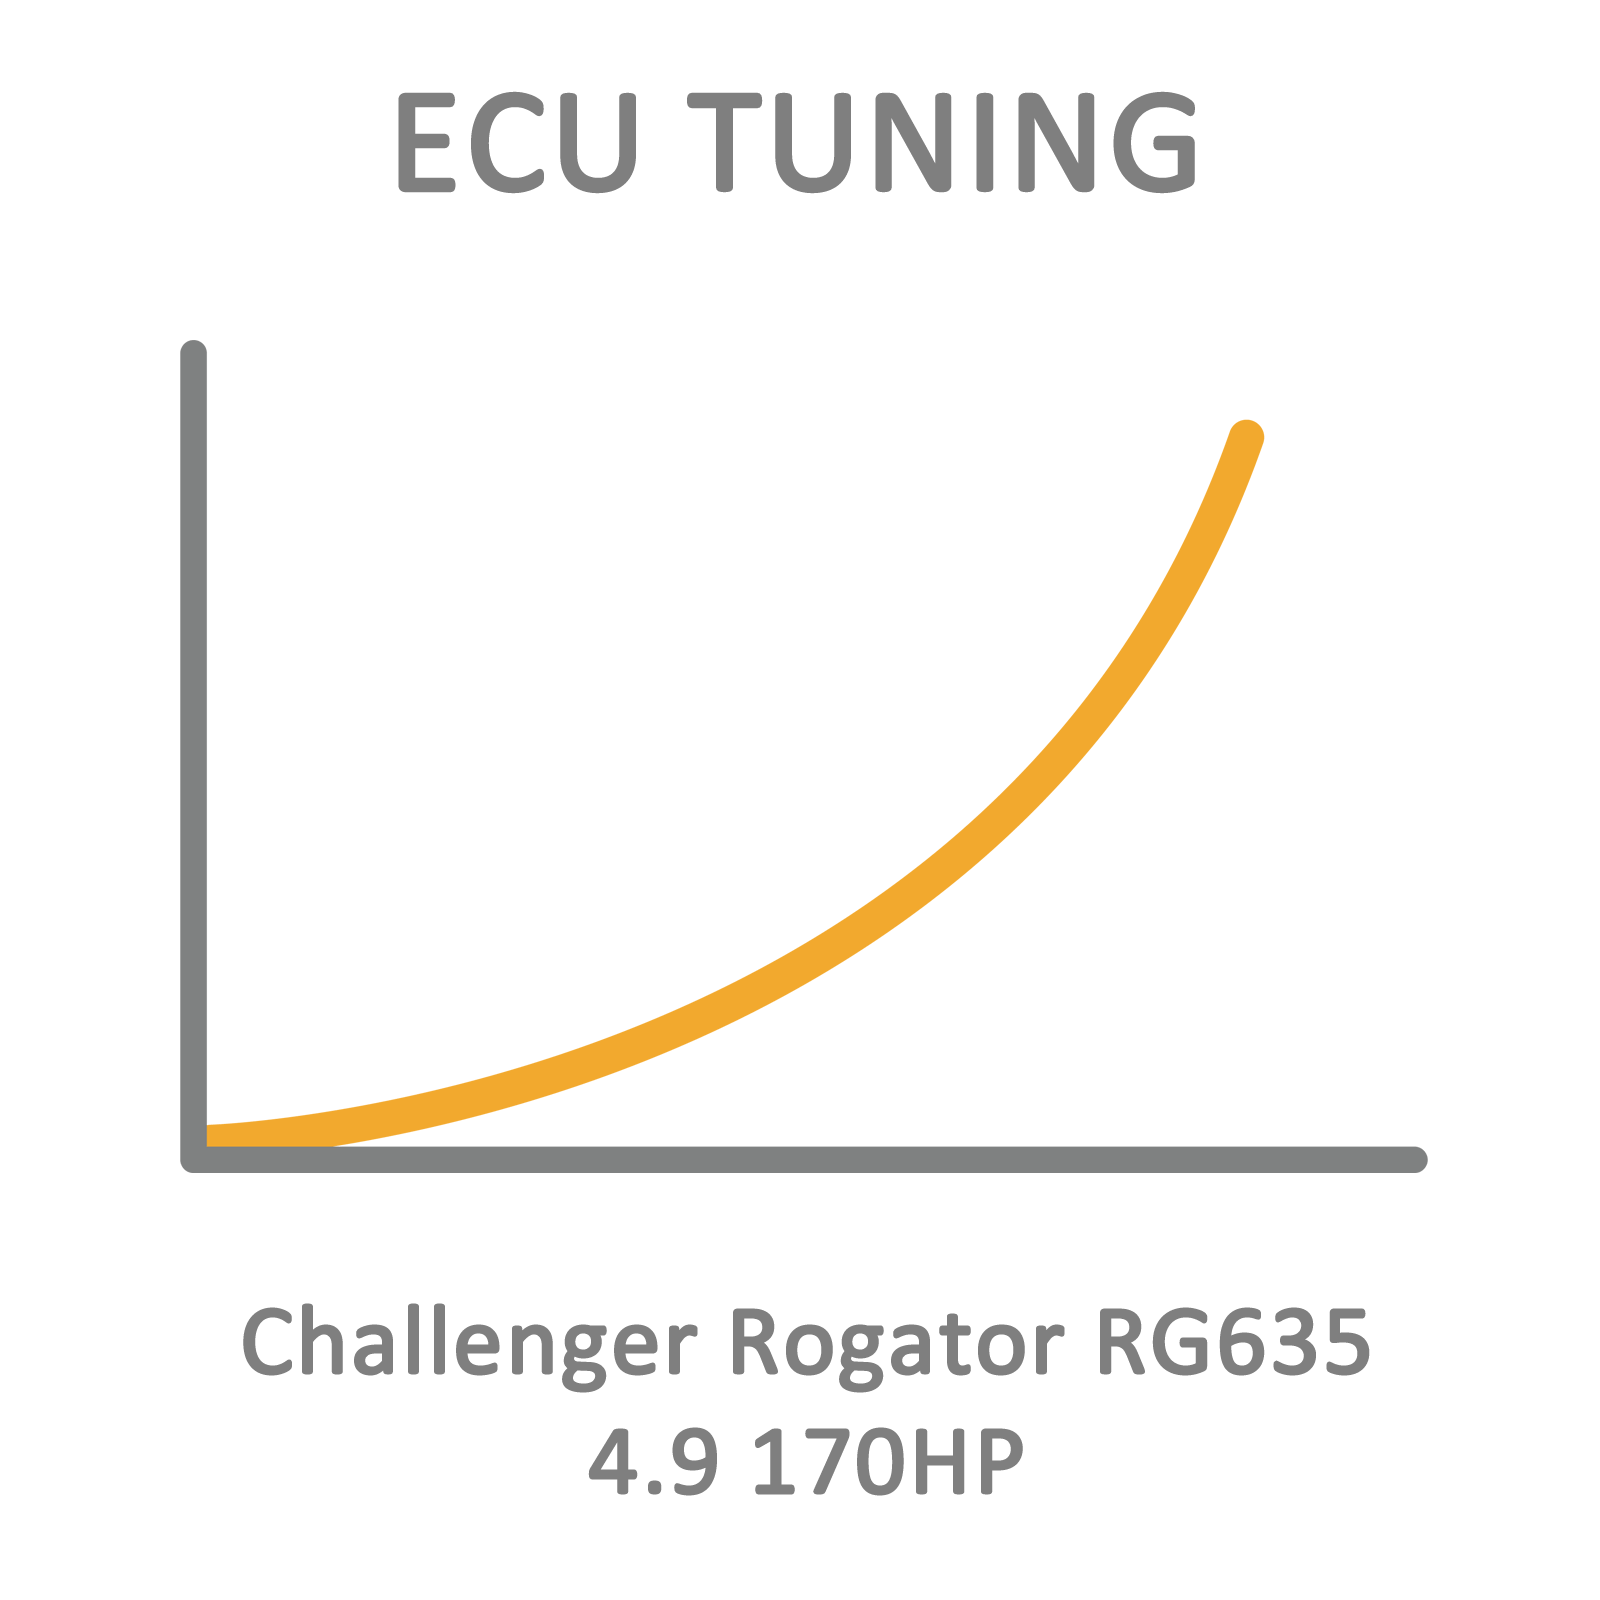 Challenger Rogator RG635 4.9 170HP ECU Tuning Remapping